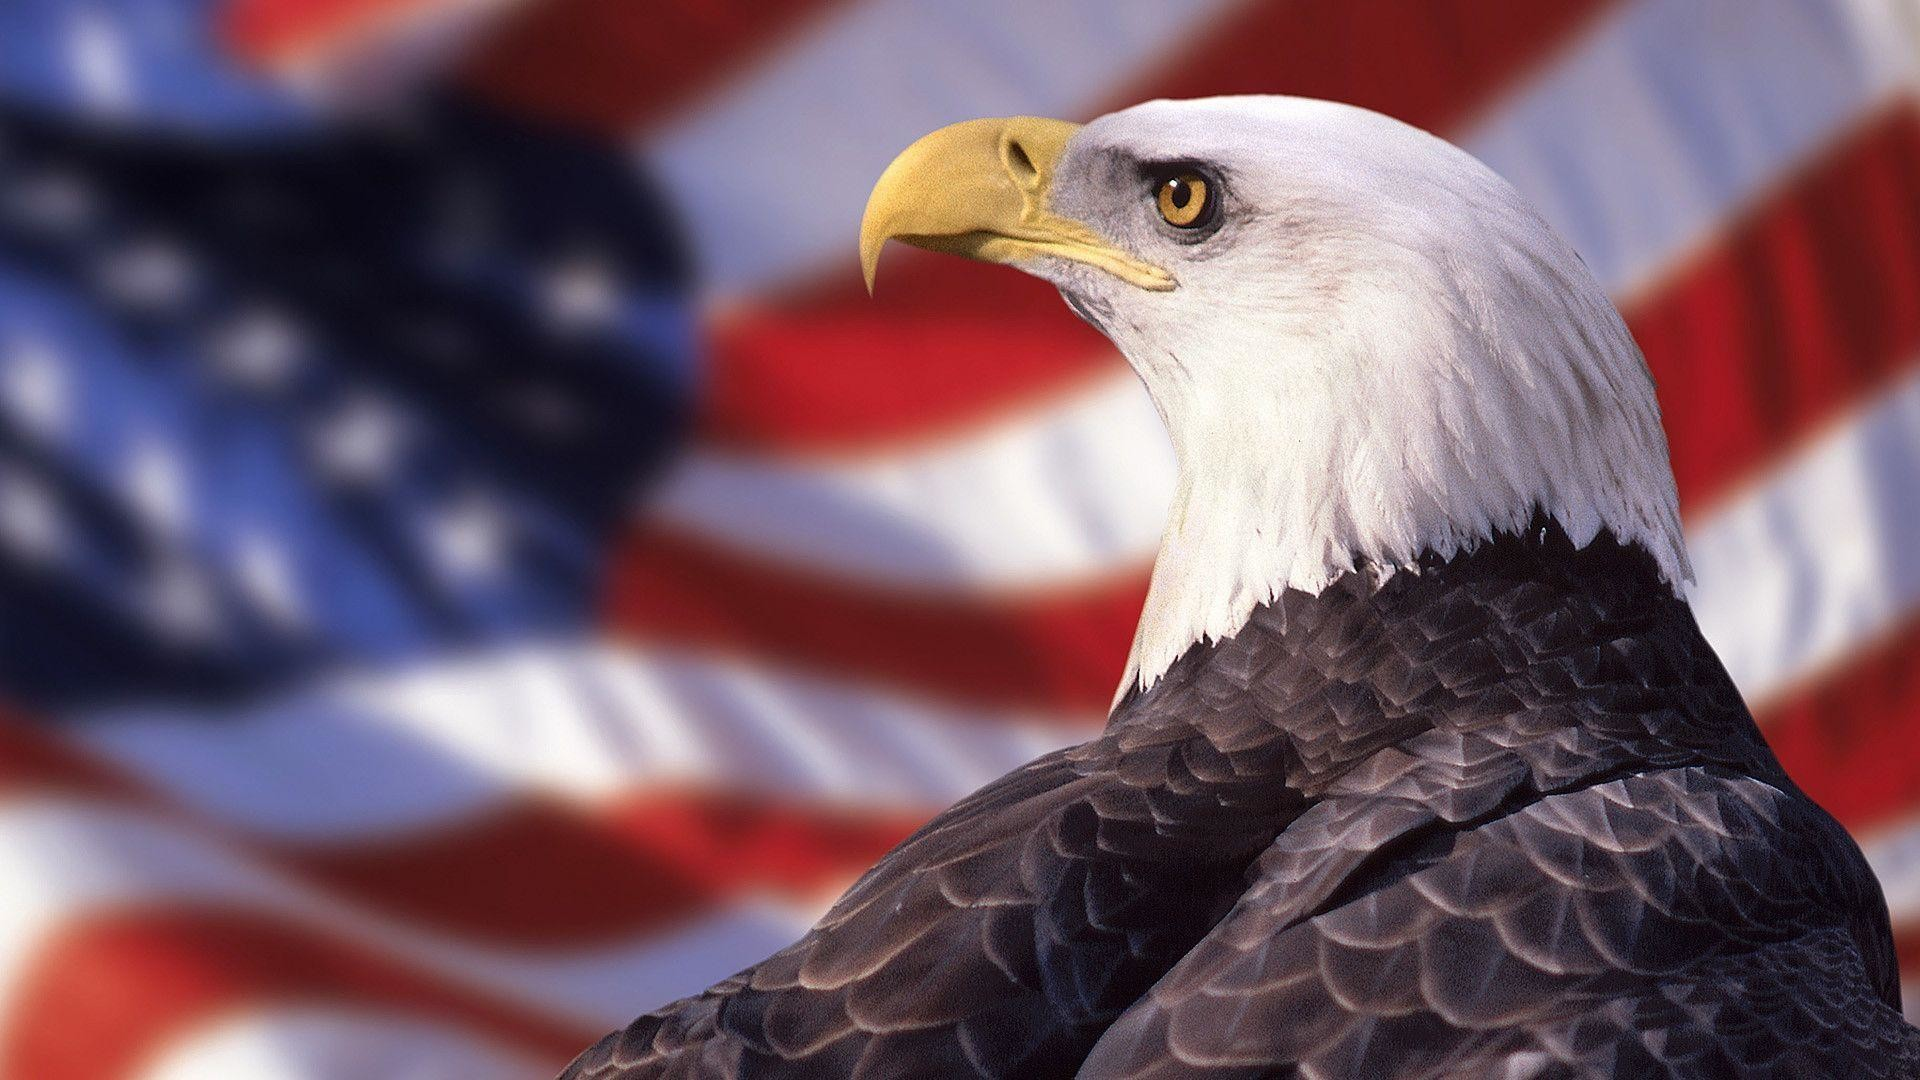 1920x1080 Bald Eagle American Flag Wallpaper | Best Free Wallpaper